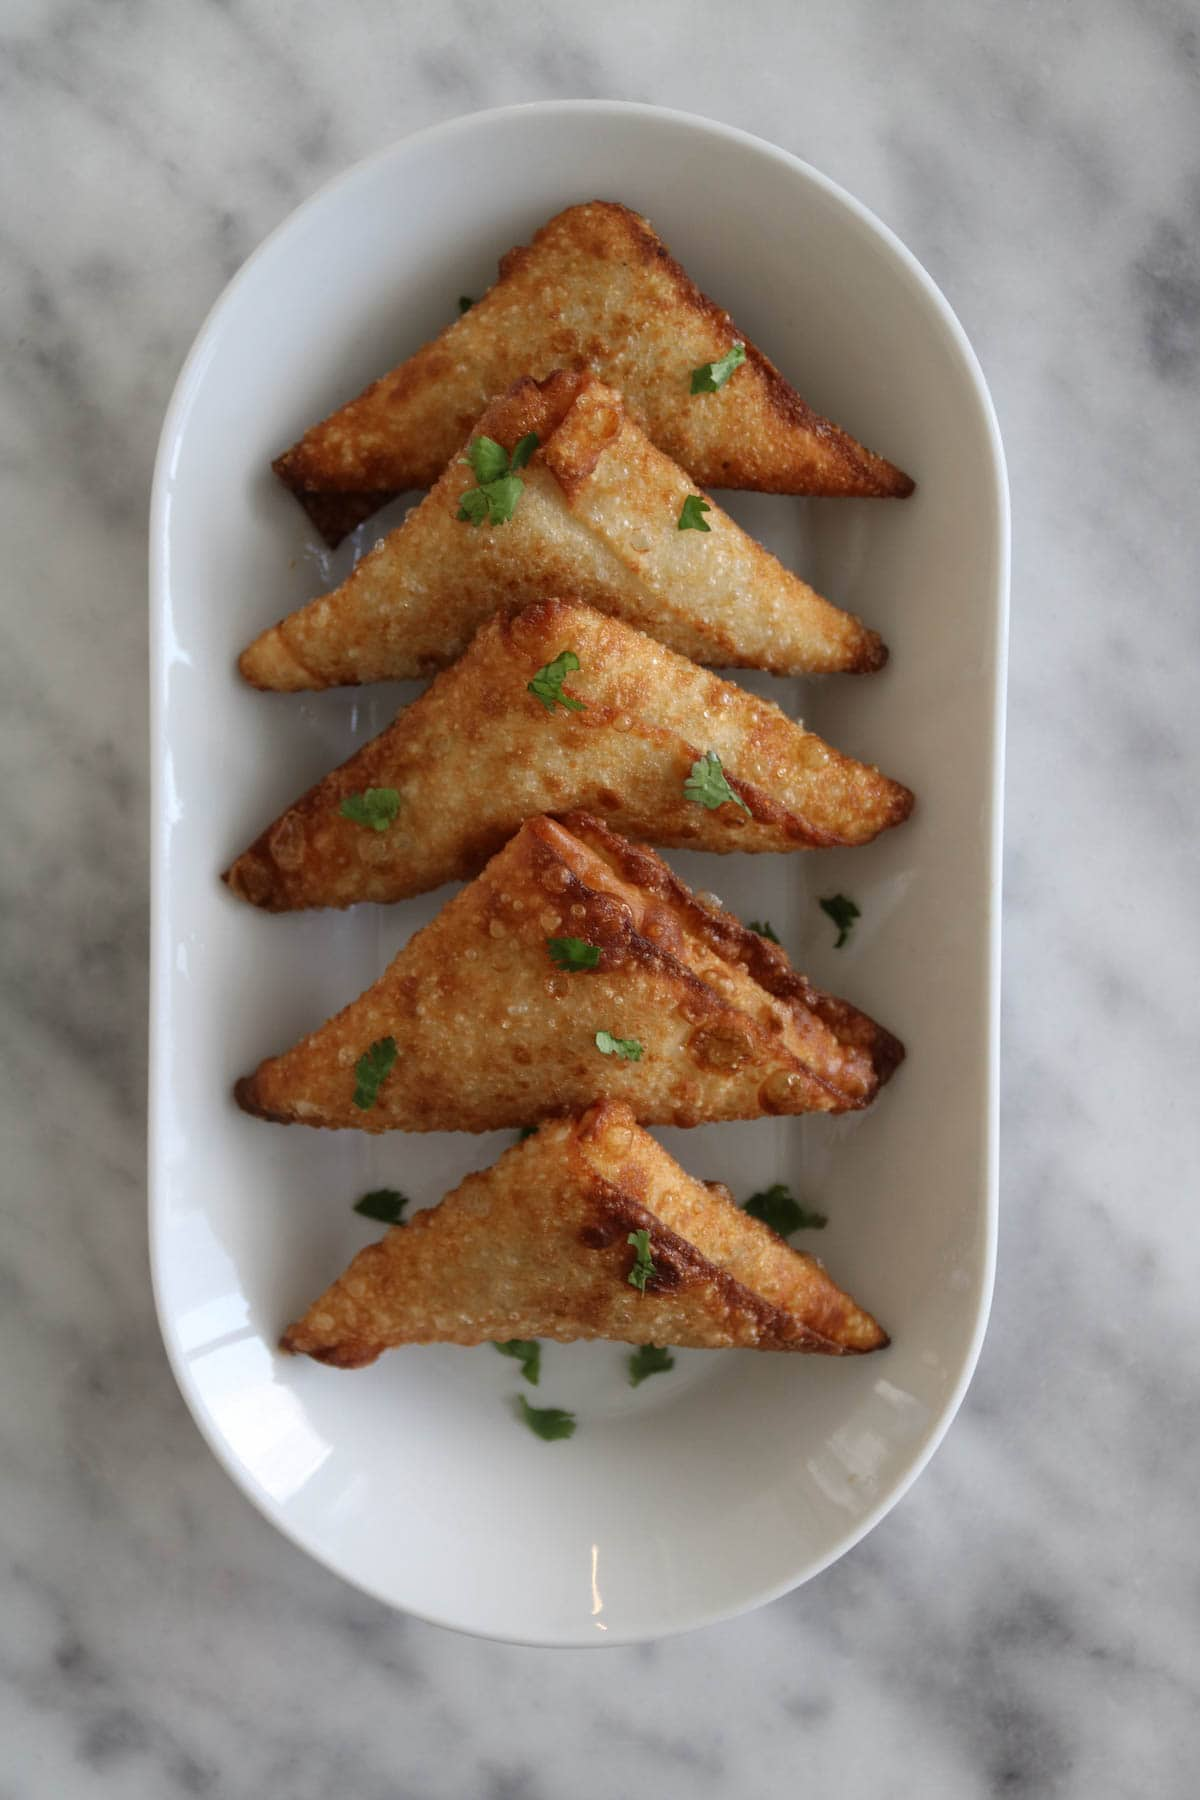 beef samosas lined up on a plate